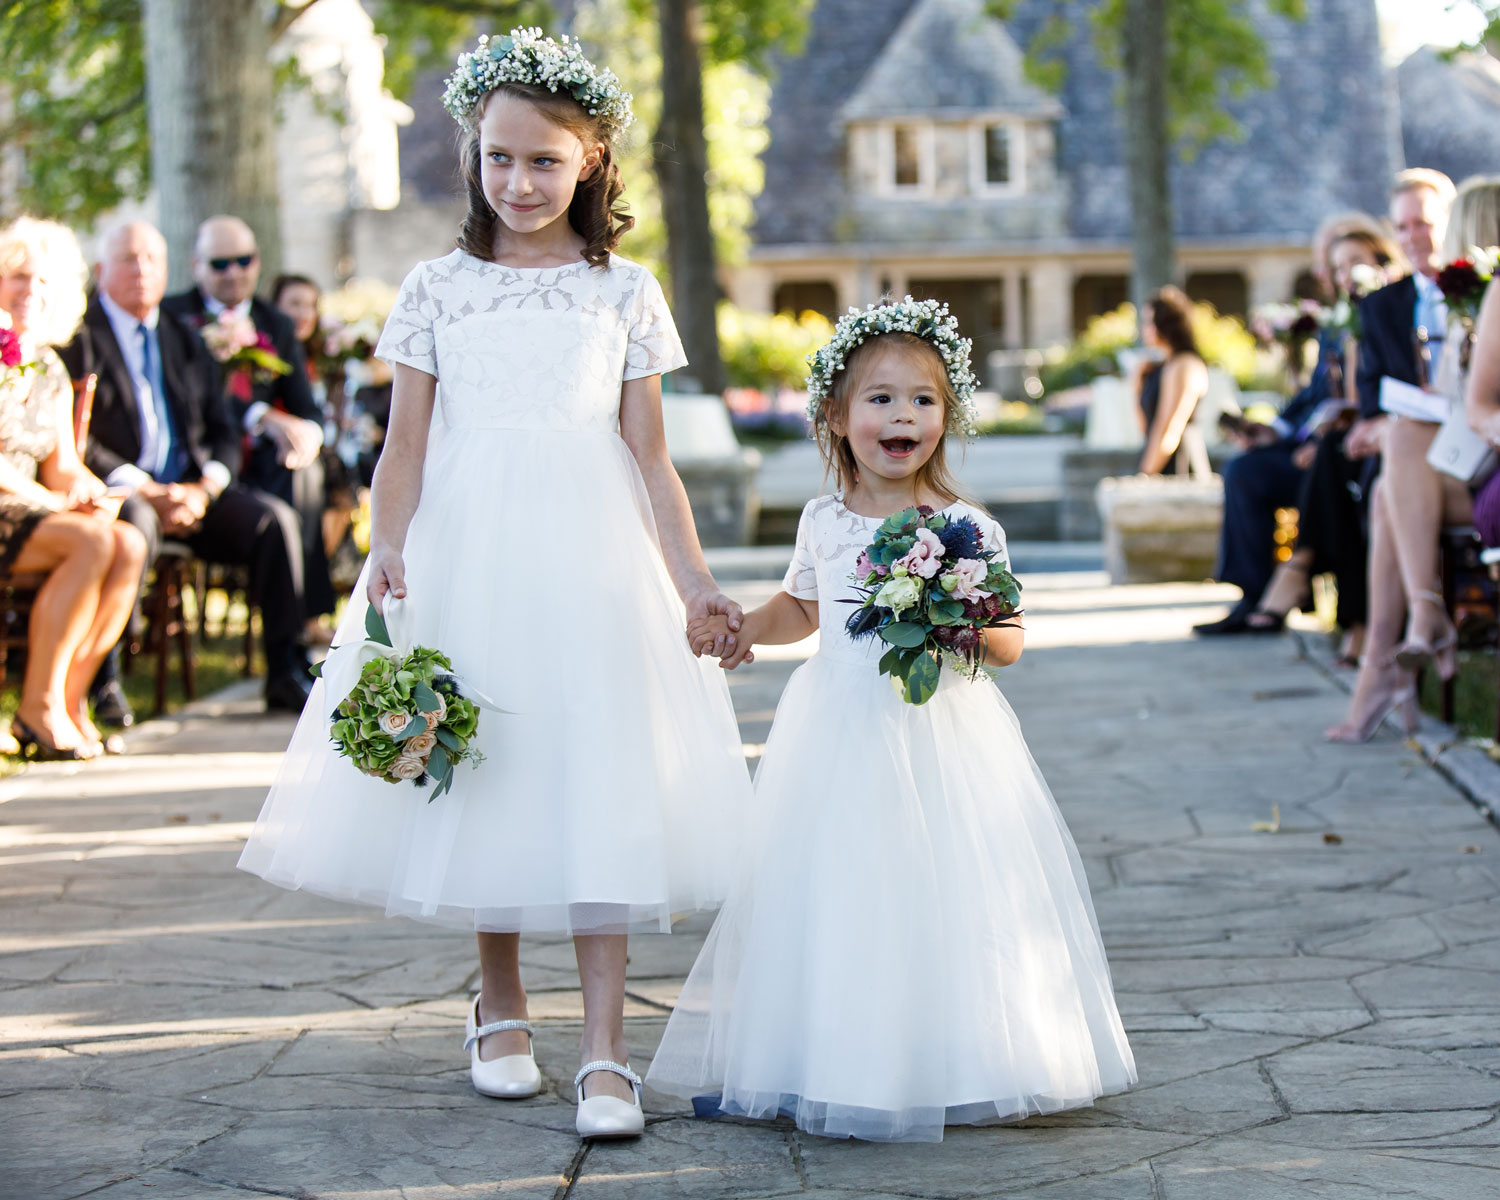 younger and older flower girl with flower crowns holding hands down aisle